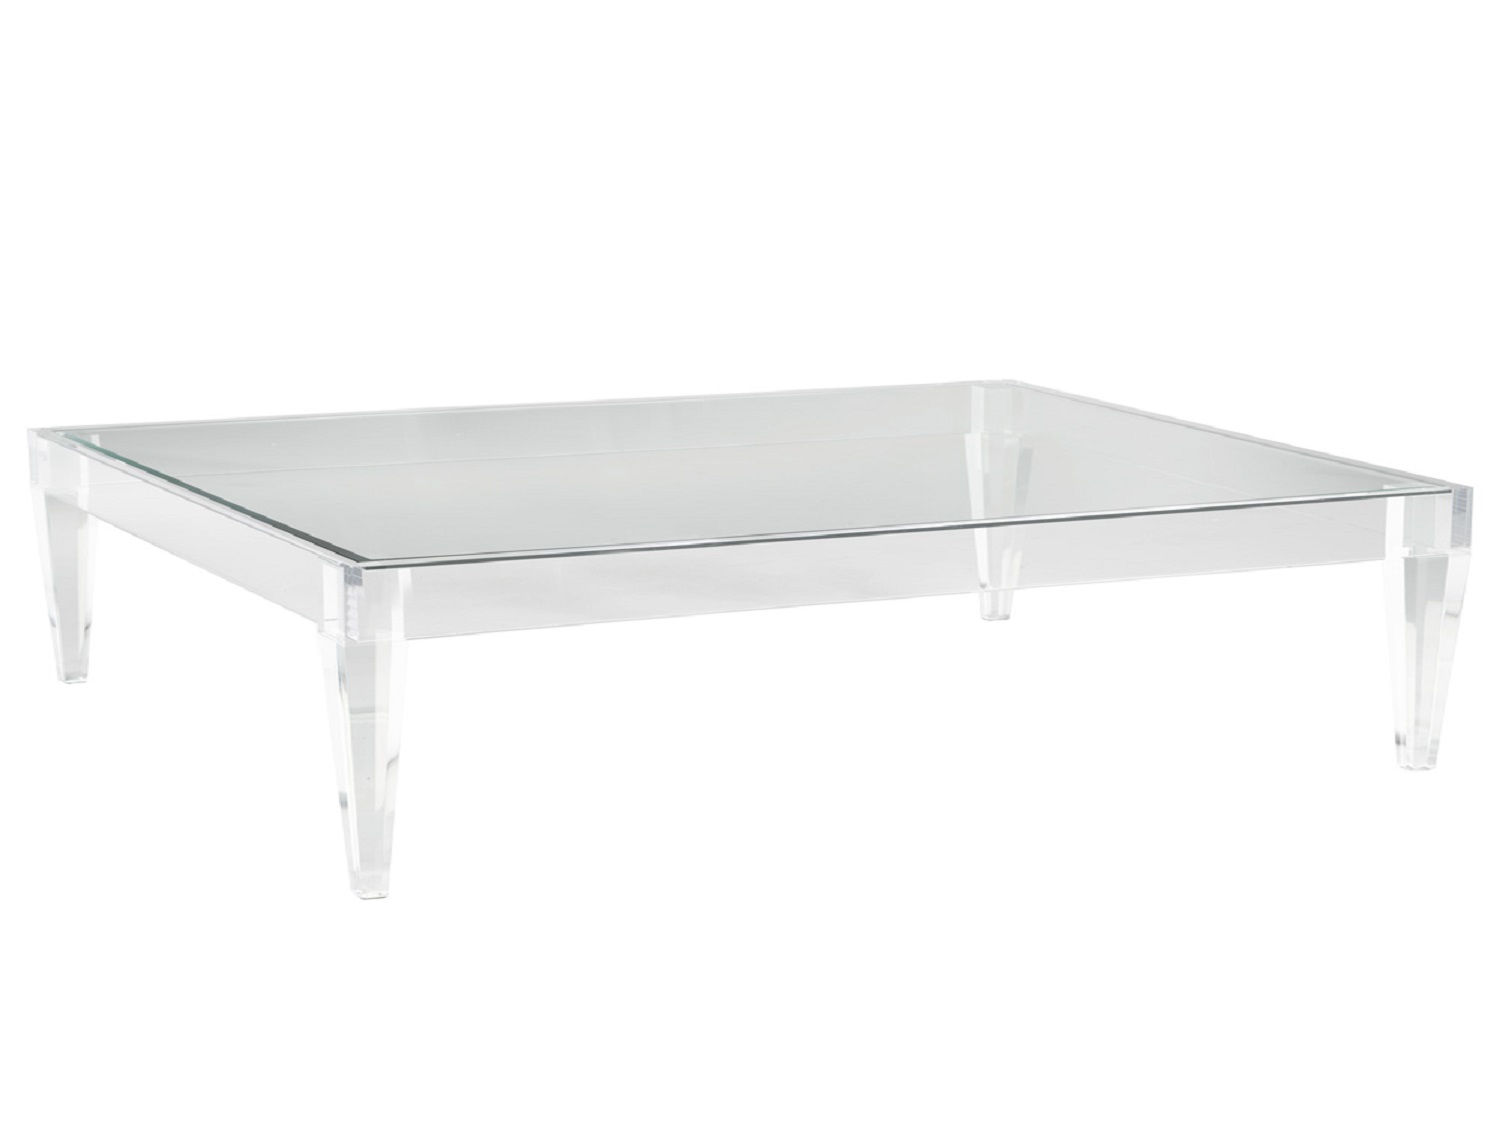 Avalon Acrylic Rectangle Coffee Table, 100998, Coffee Table by Midha Furniture to Brampton, Mississauga, Etobicoke, Toronto, Scraborough, Caledon, Oakville, Markham, Ajax, Pickering, Oshawa, Richmondhill, Kitchener, Hamilton and GTA area